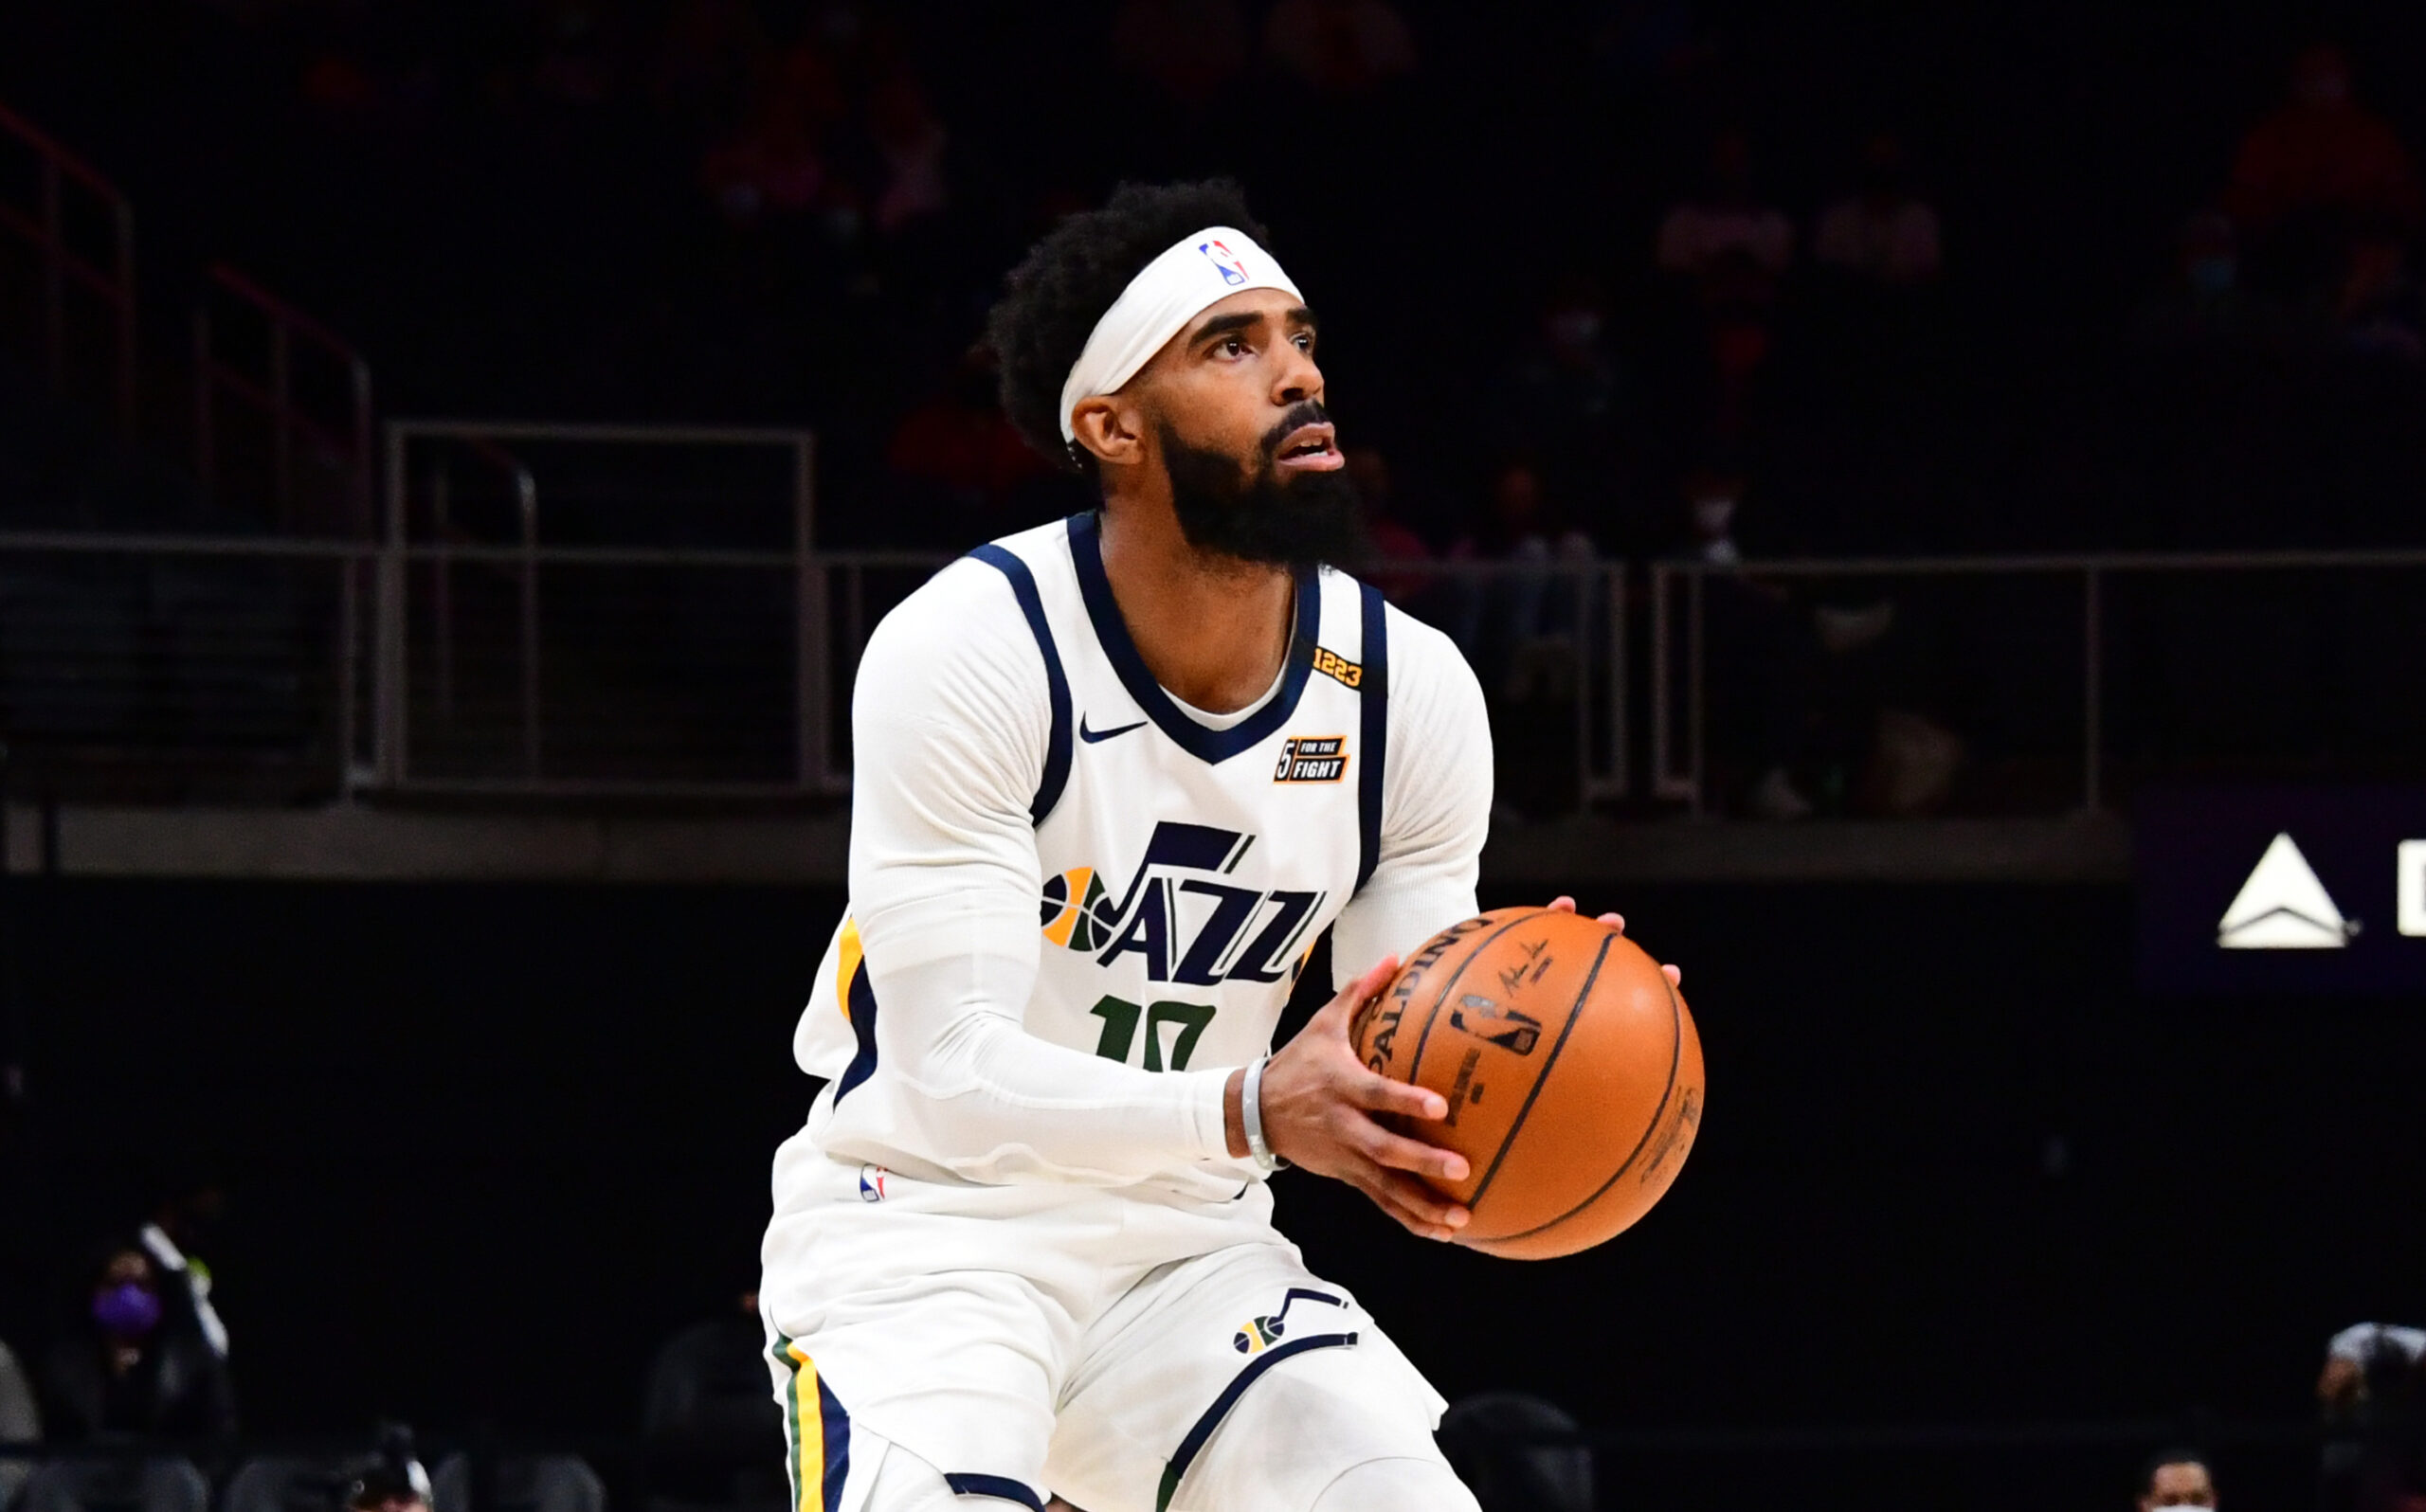 Utah's Conley to replace Phoenix's Booker in 2021 NBA All-Star Games and MTN DEW 3-Point Contest